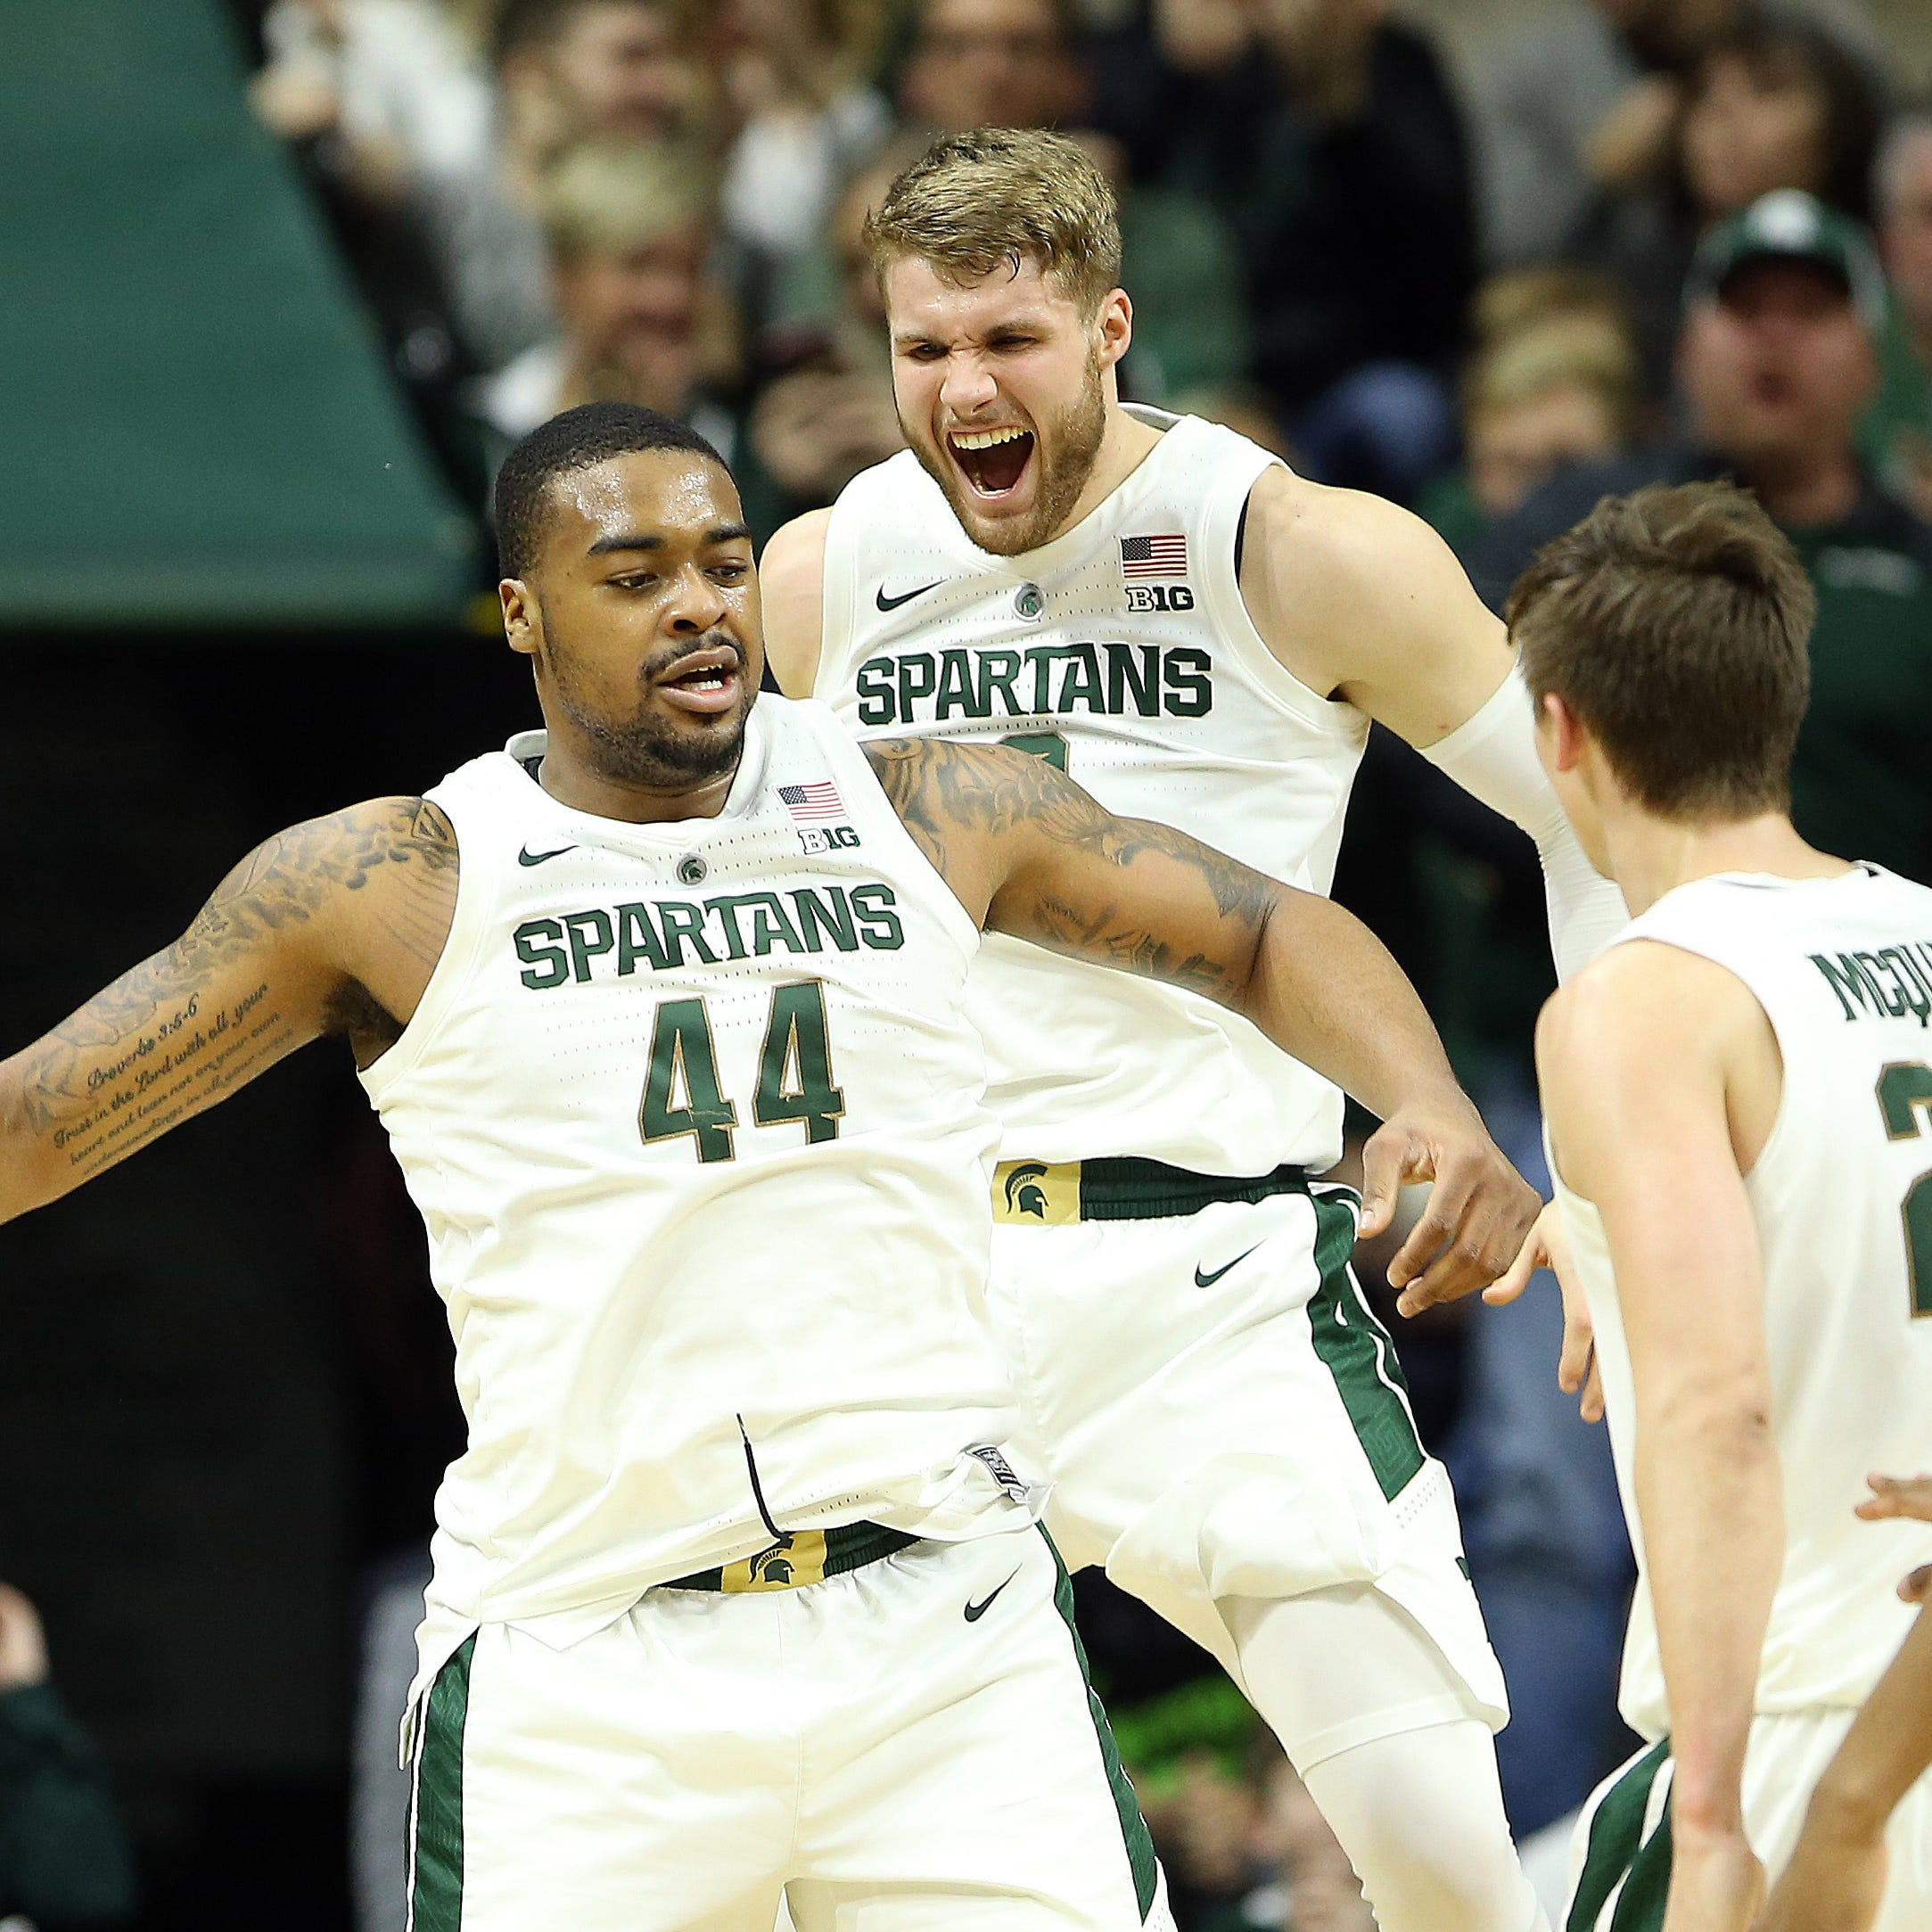 Bracketology: Michigan State near the top, and 10 Big Ten teams projected to make NCAAs